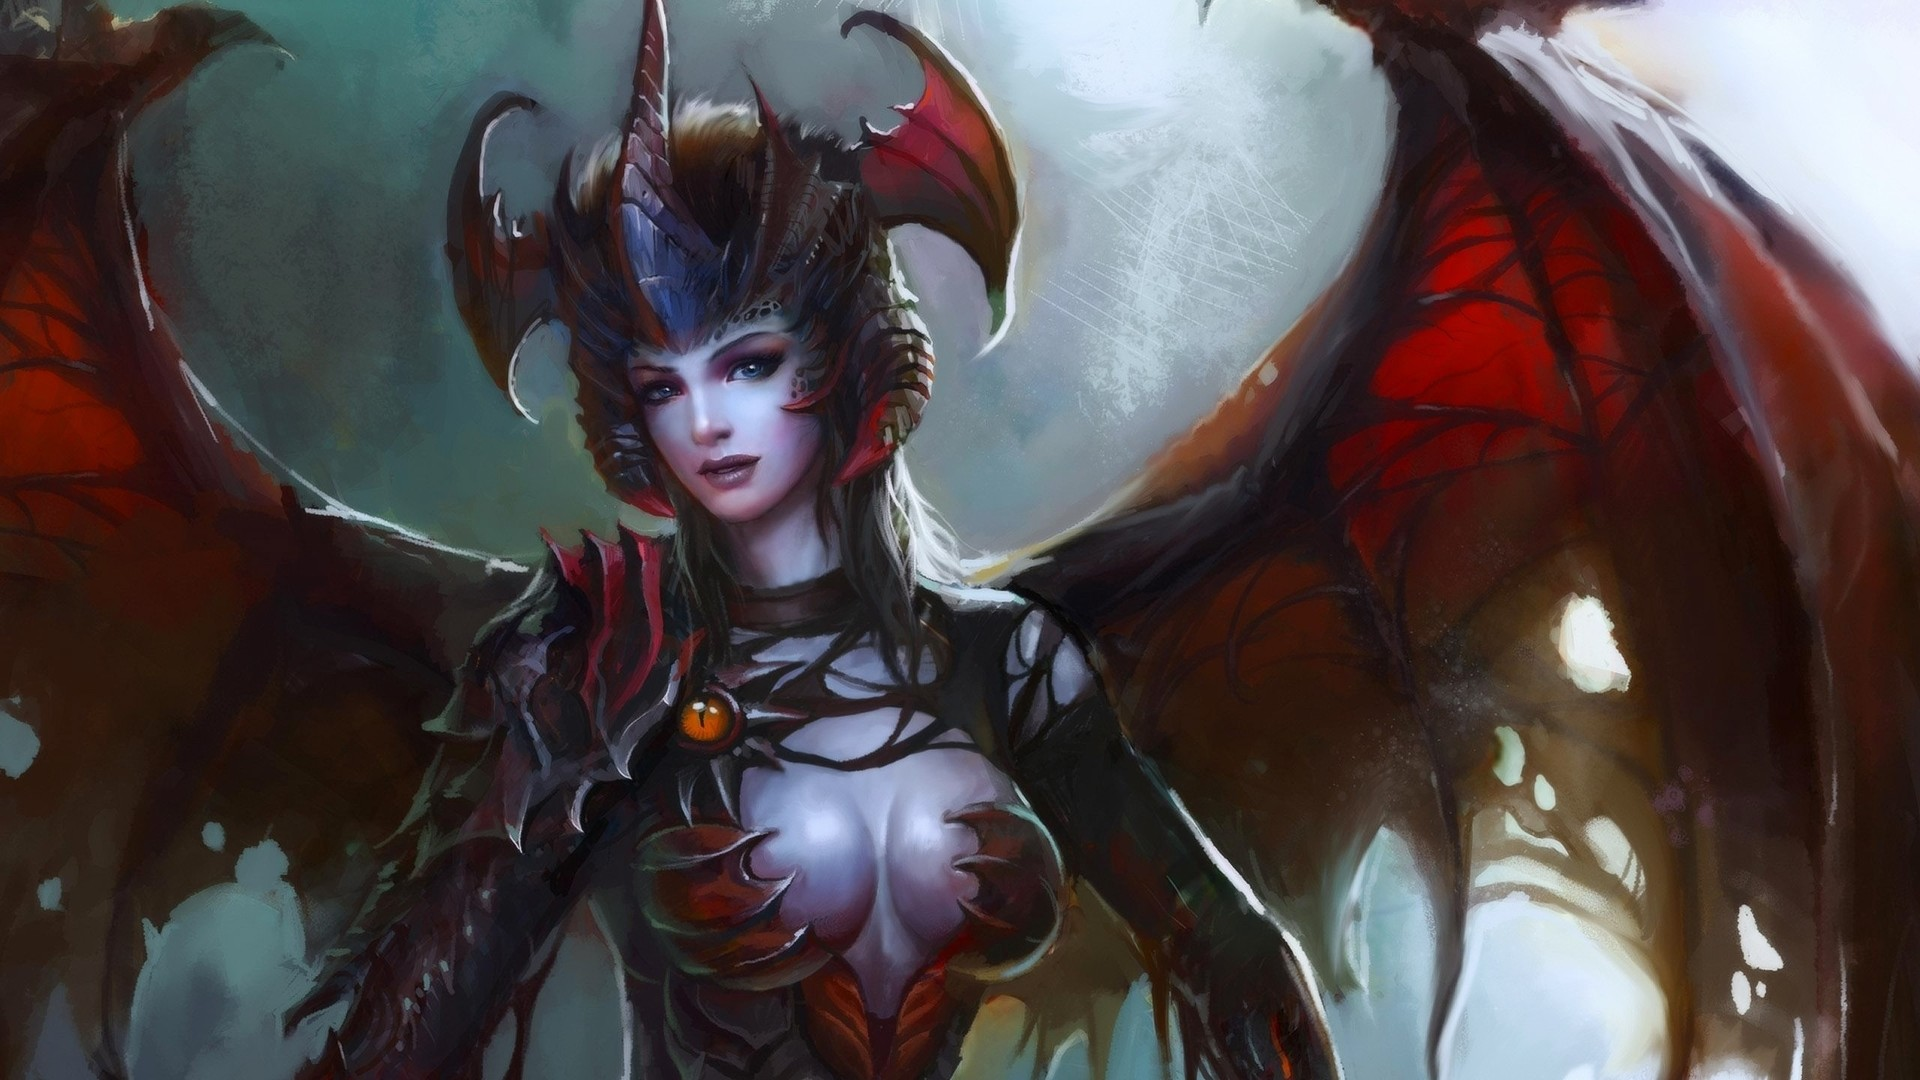 1920x1080 Description: Download Wings succubus horns armor artwork demon girl  wallpaper/desktop background in  HD & Widescreen resolution.